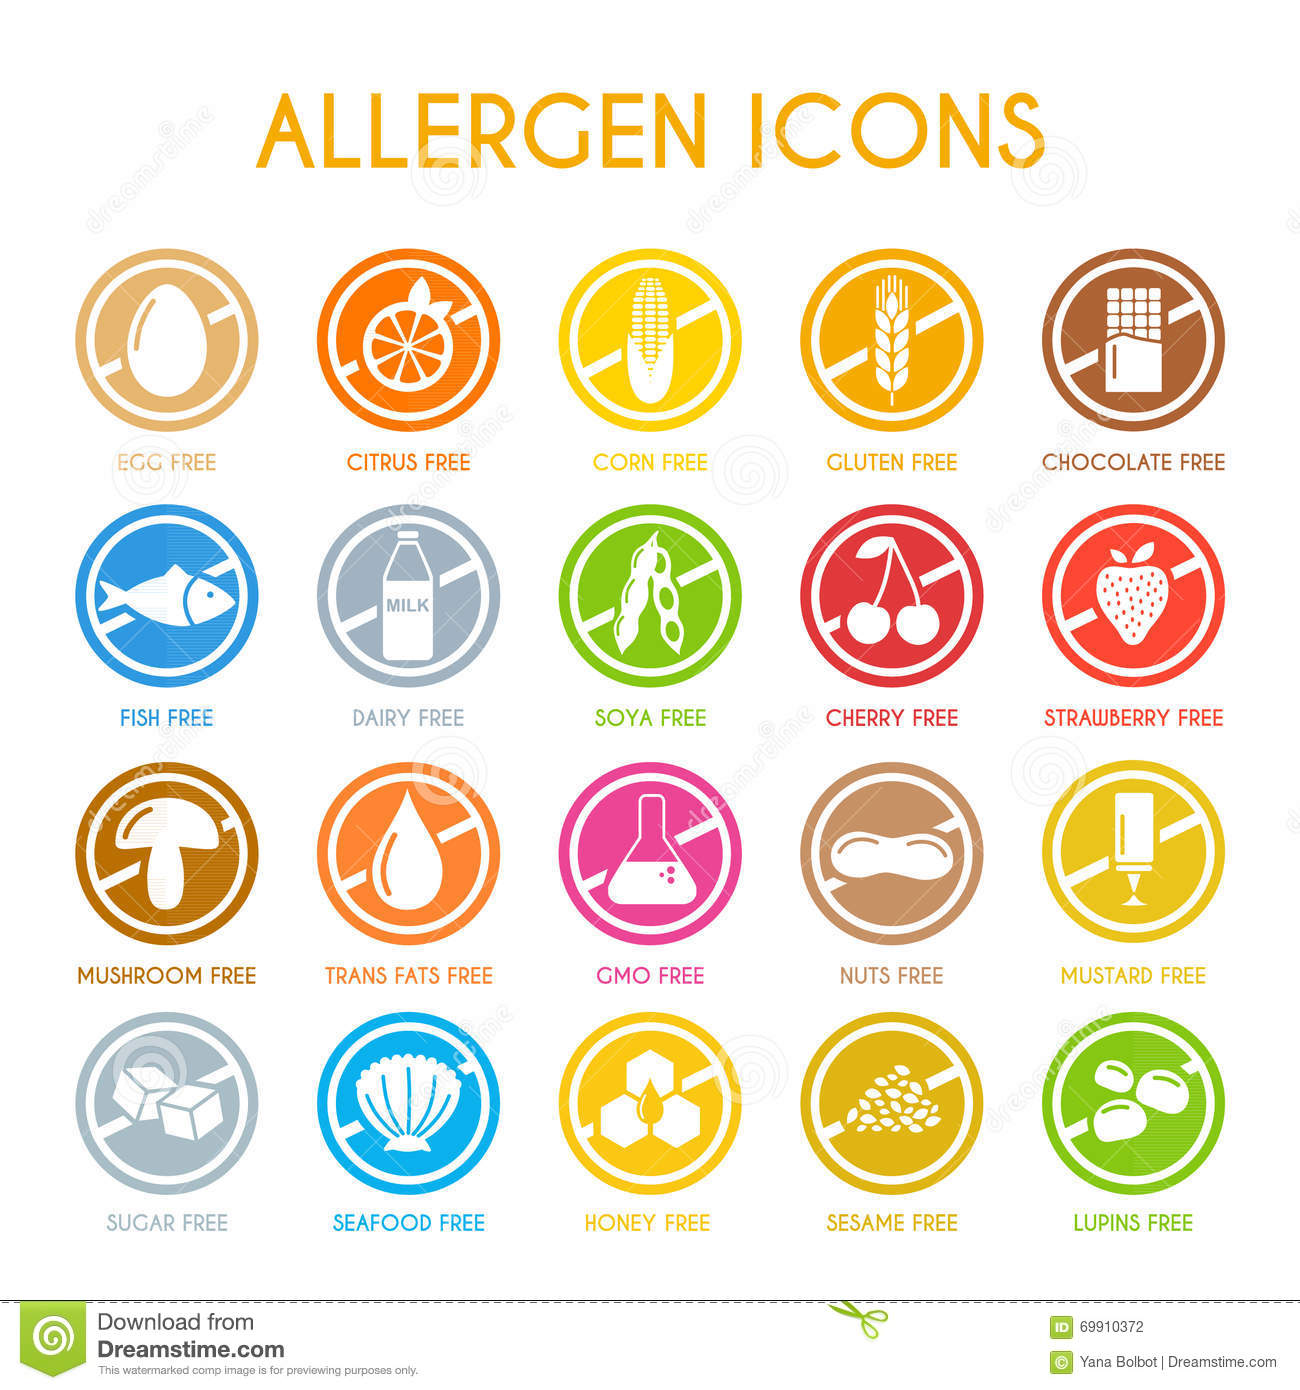 Allergen icons with free egg, citrus, corn, fish, soya, cherry and ...